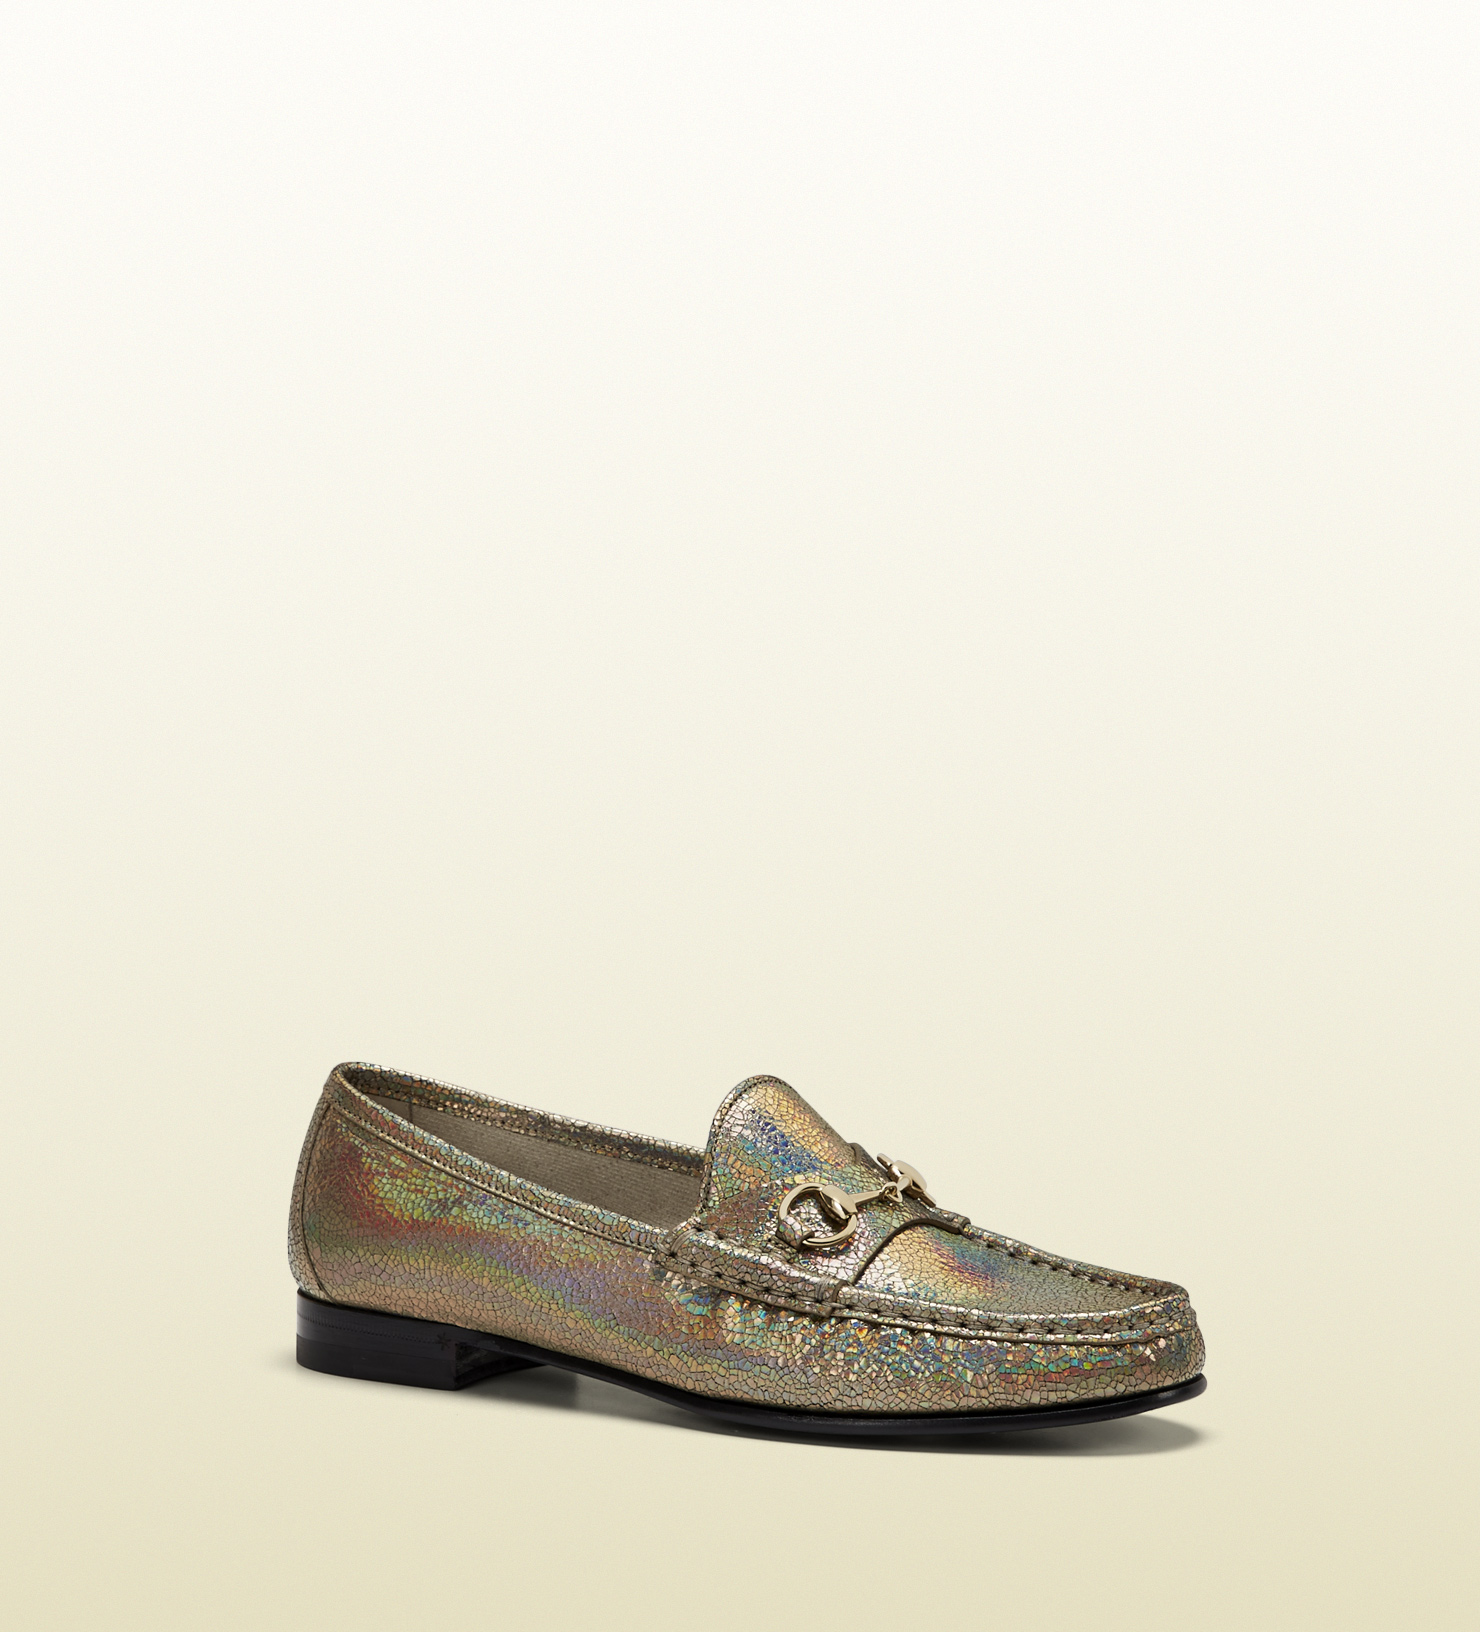 Gucci - 1953 horsebit loafer in crackled metallic leather 318394DCK009605